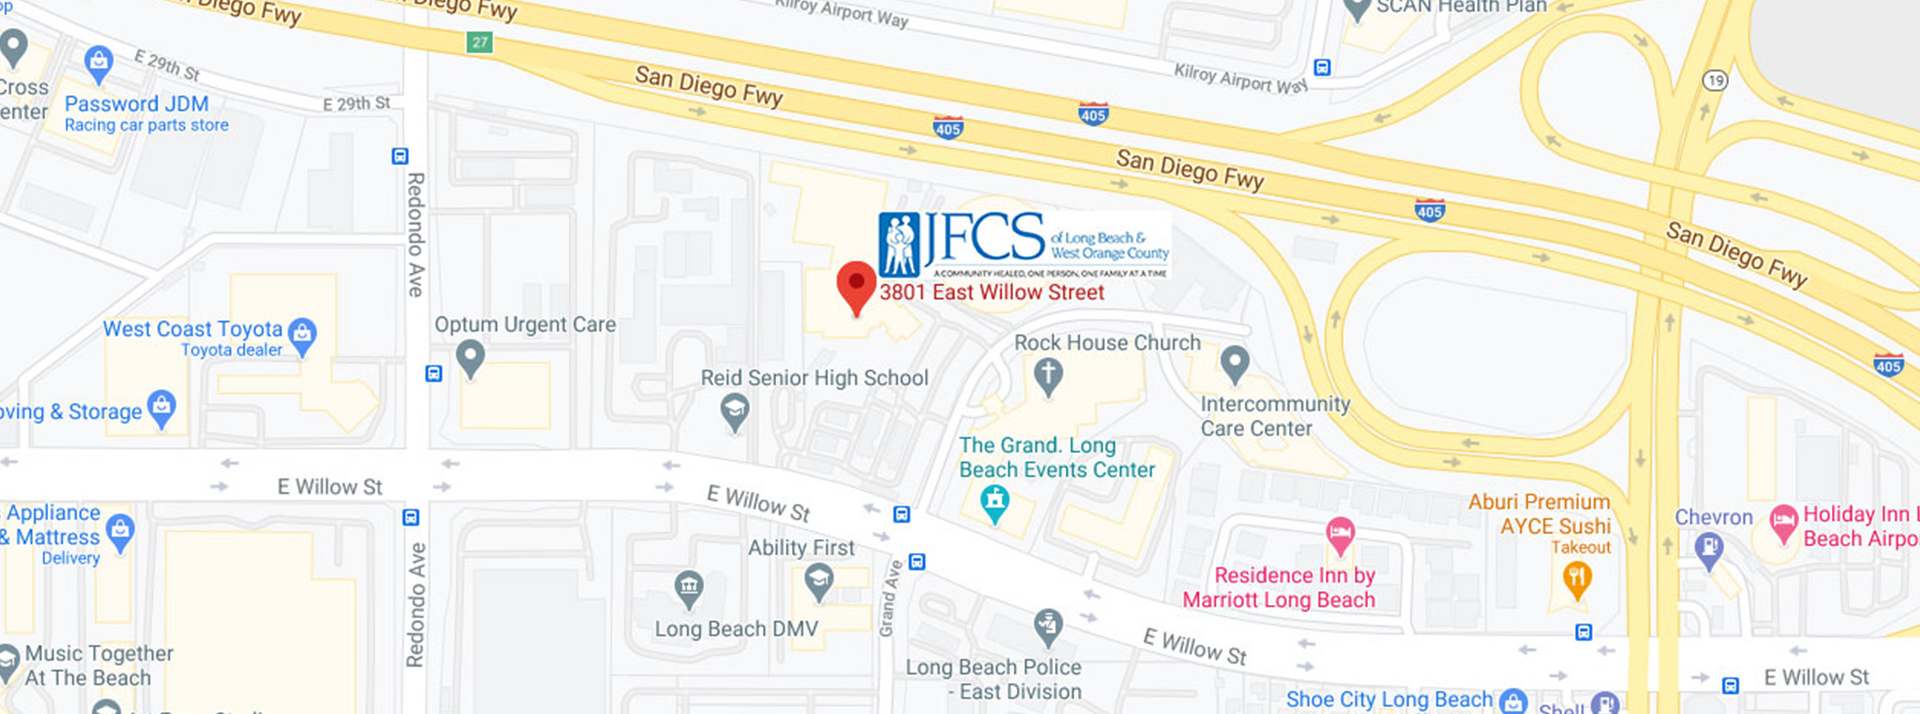 JFCS-Location-Map